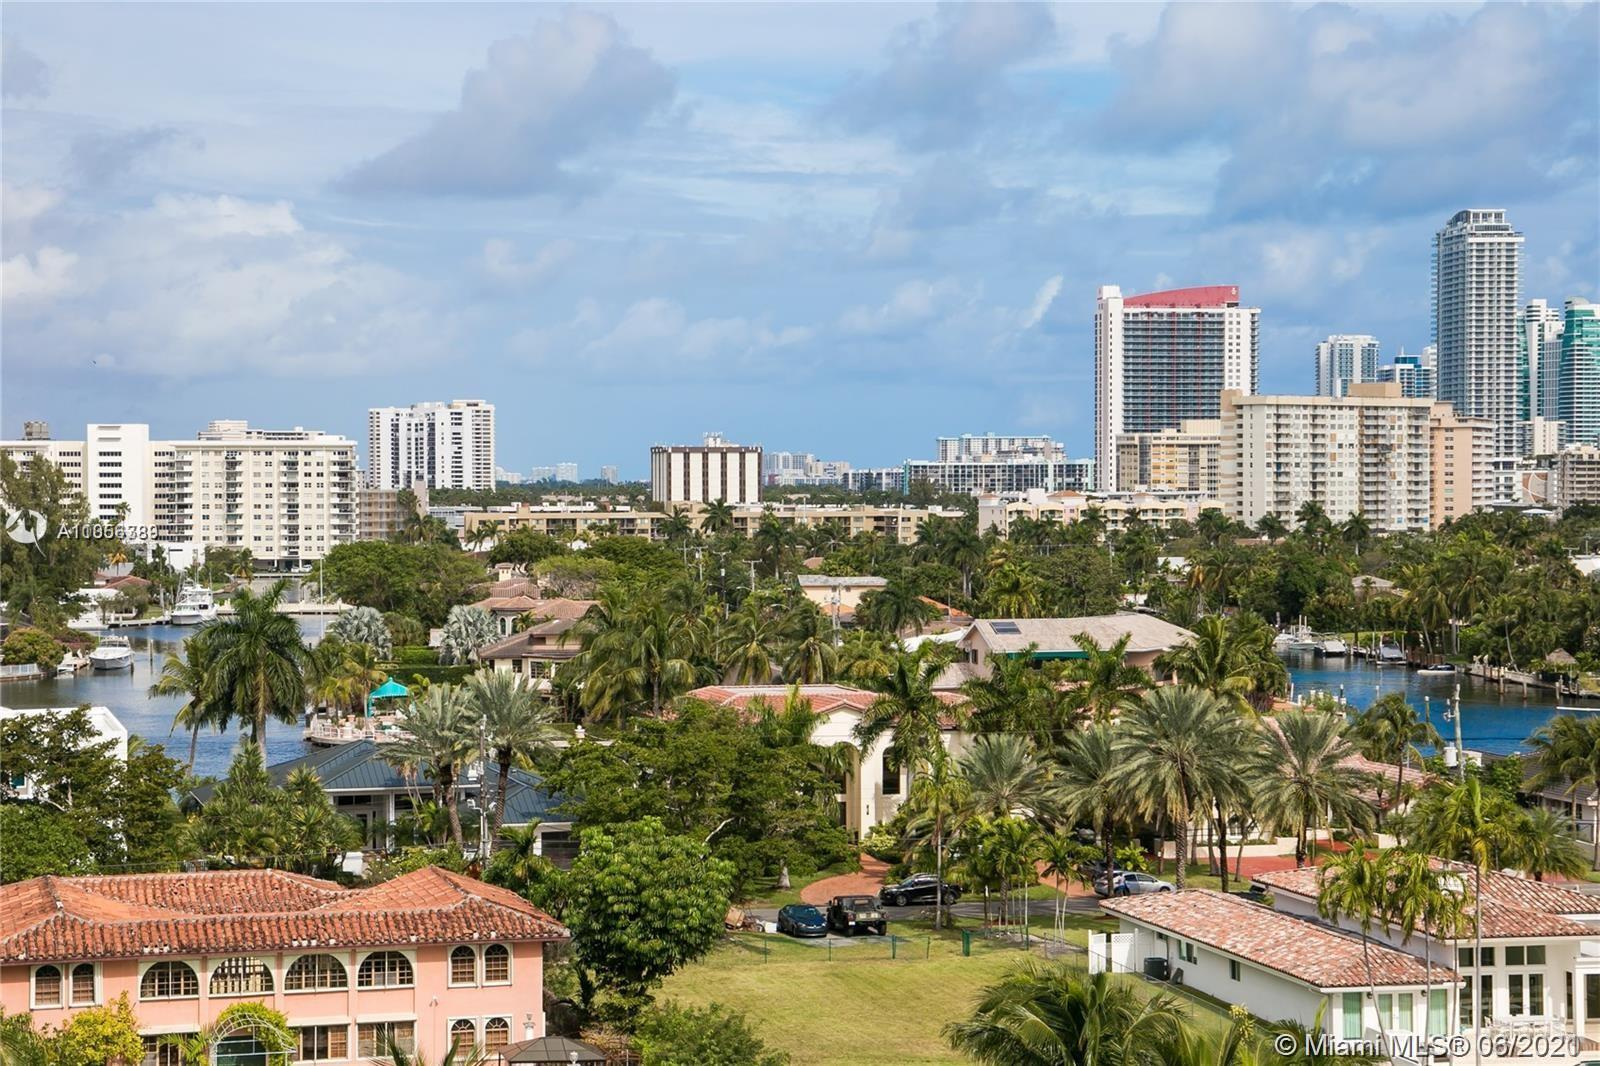 Spacious and bright split floor plan with 3 bedrooms/2 baths condo at Harborside by Waterways MARINA